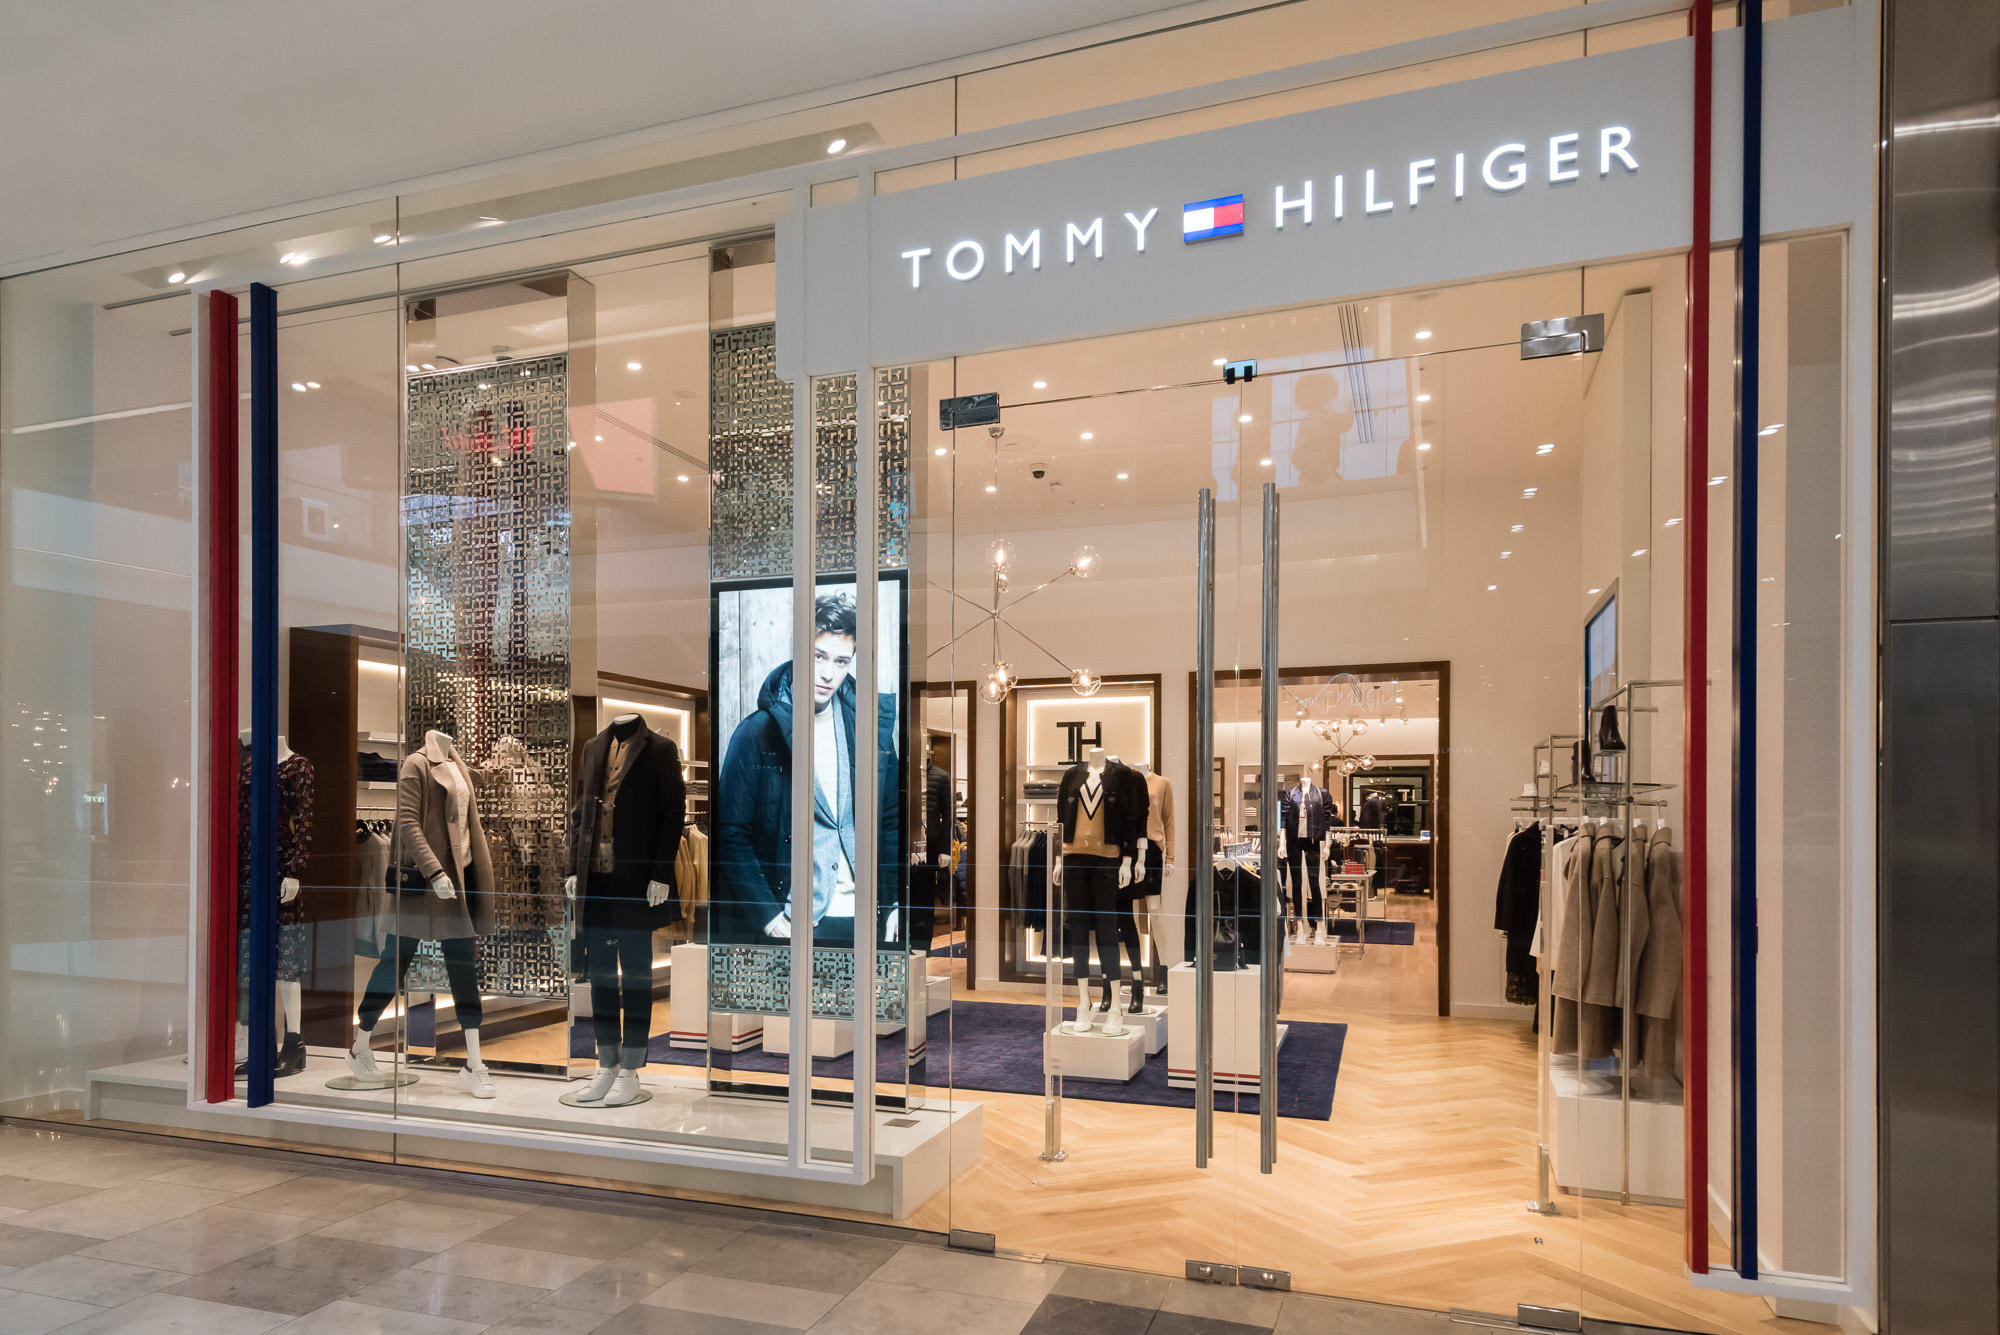 Tommy Hilfiger - London, London E20 1EL - 020 8221 0808 | ShowMeLocal.com